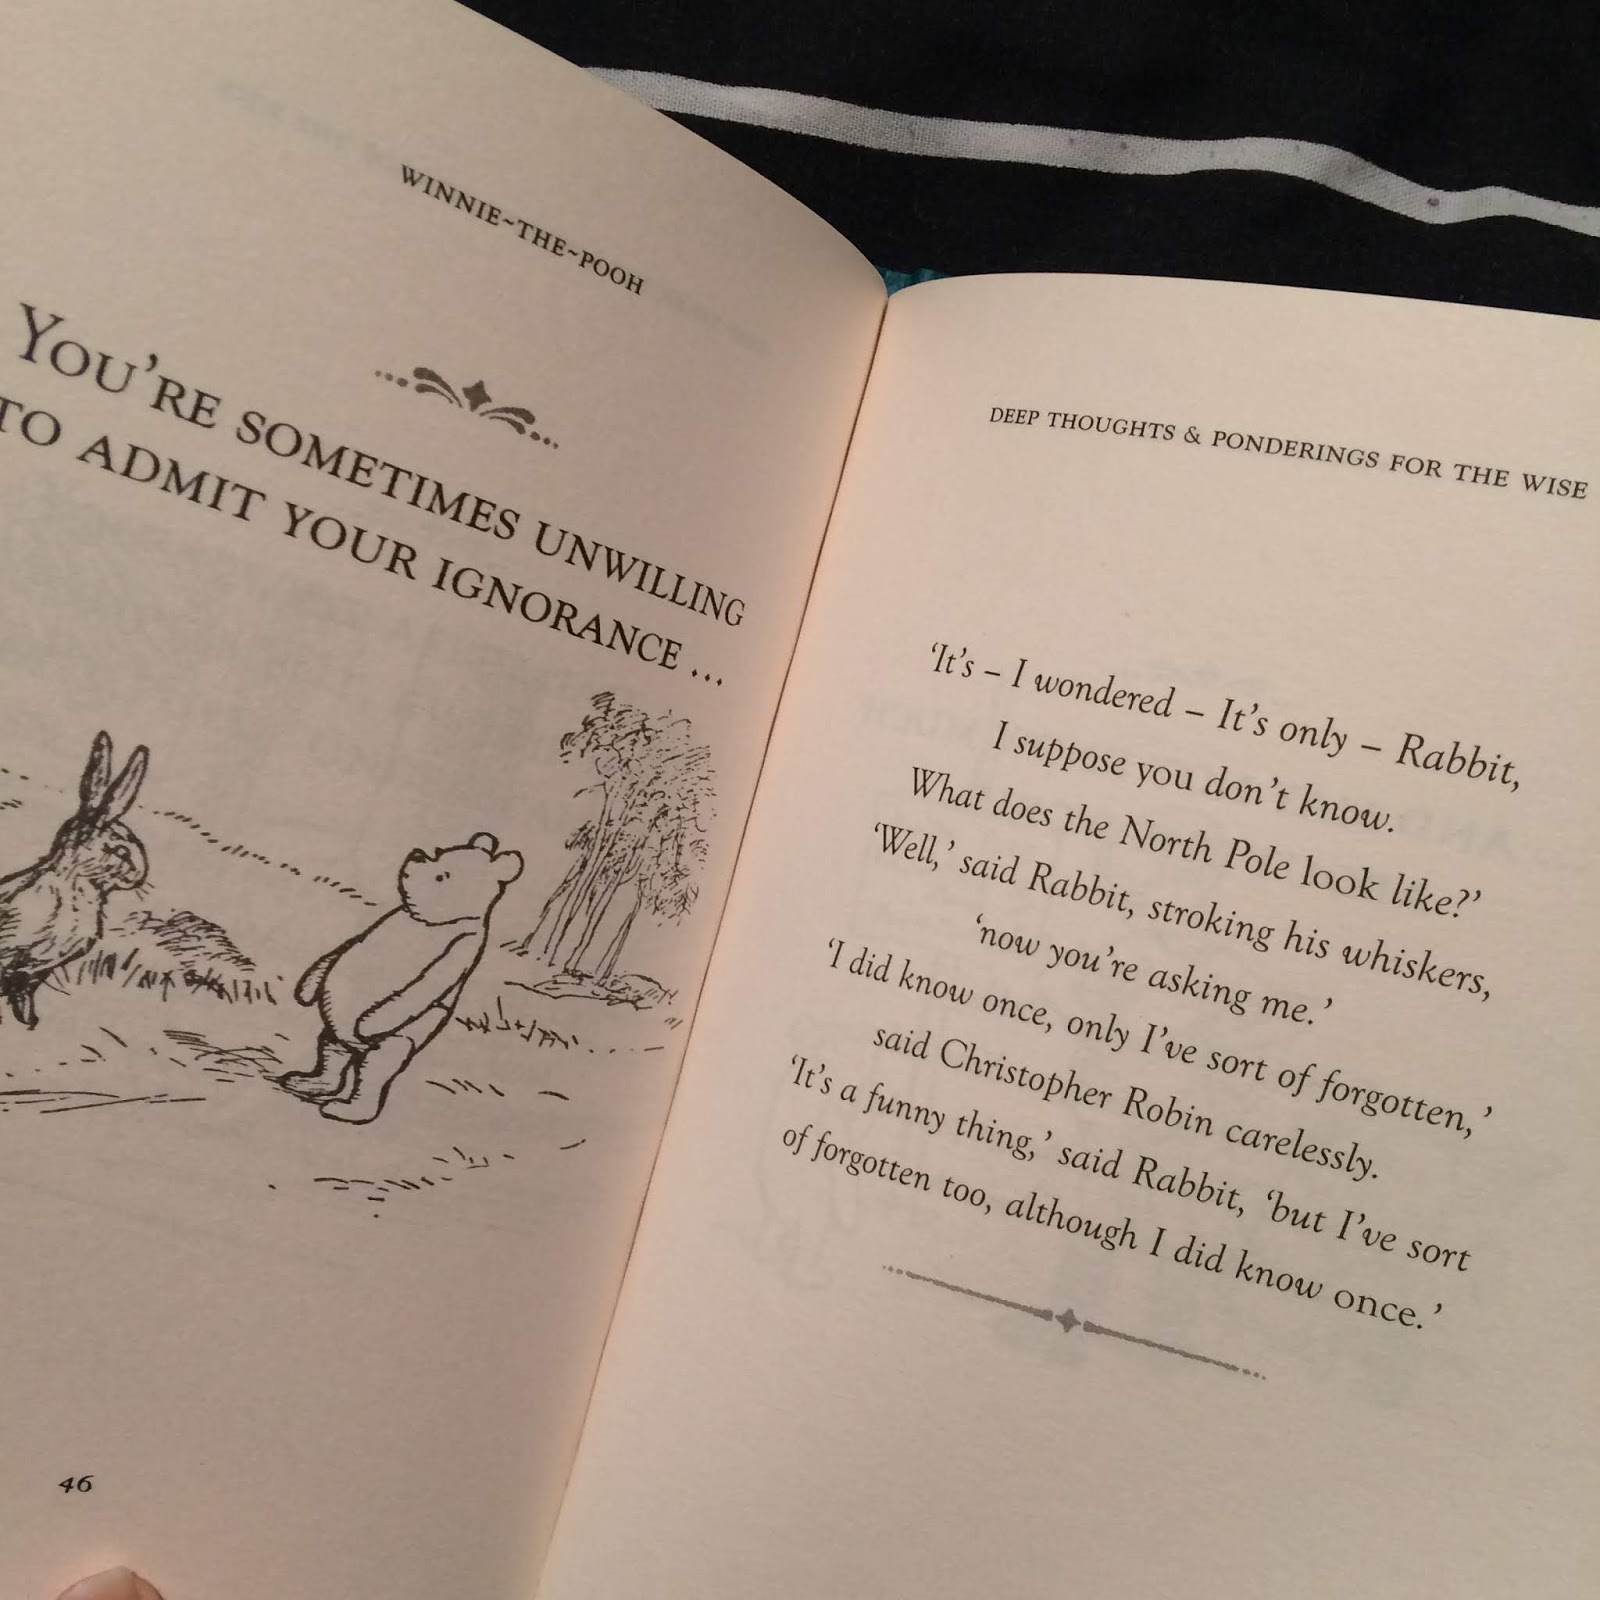 Quote taken from Winnie-the-Pooh: Deep Thoughts & Ponderings for the Wise